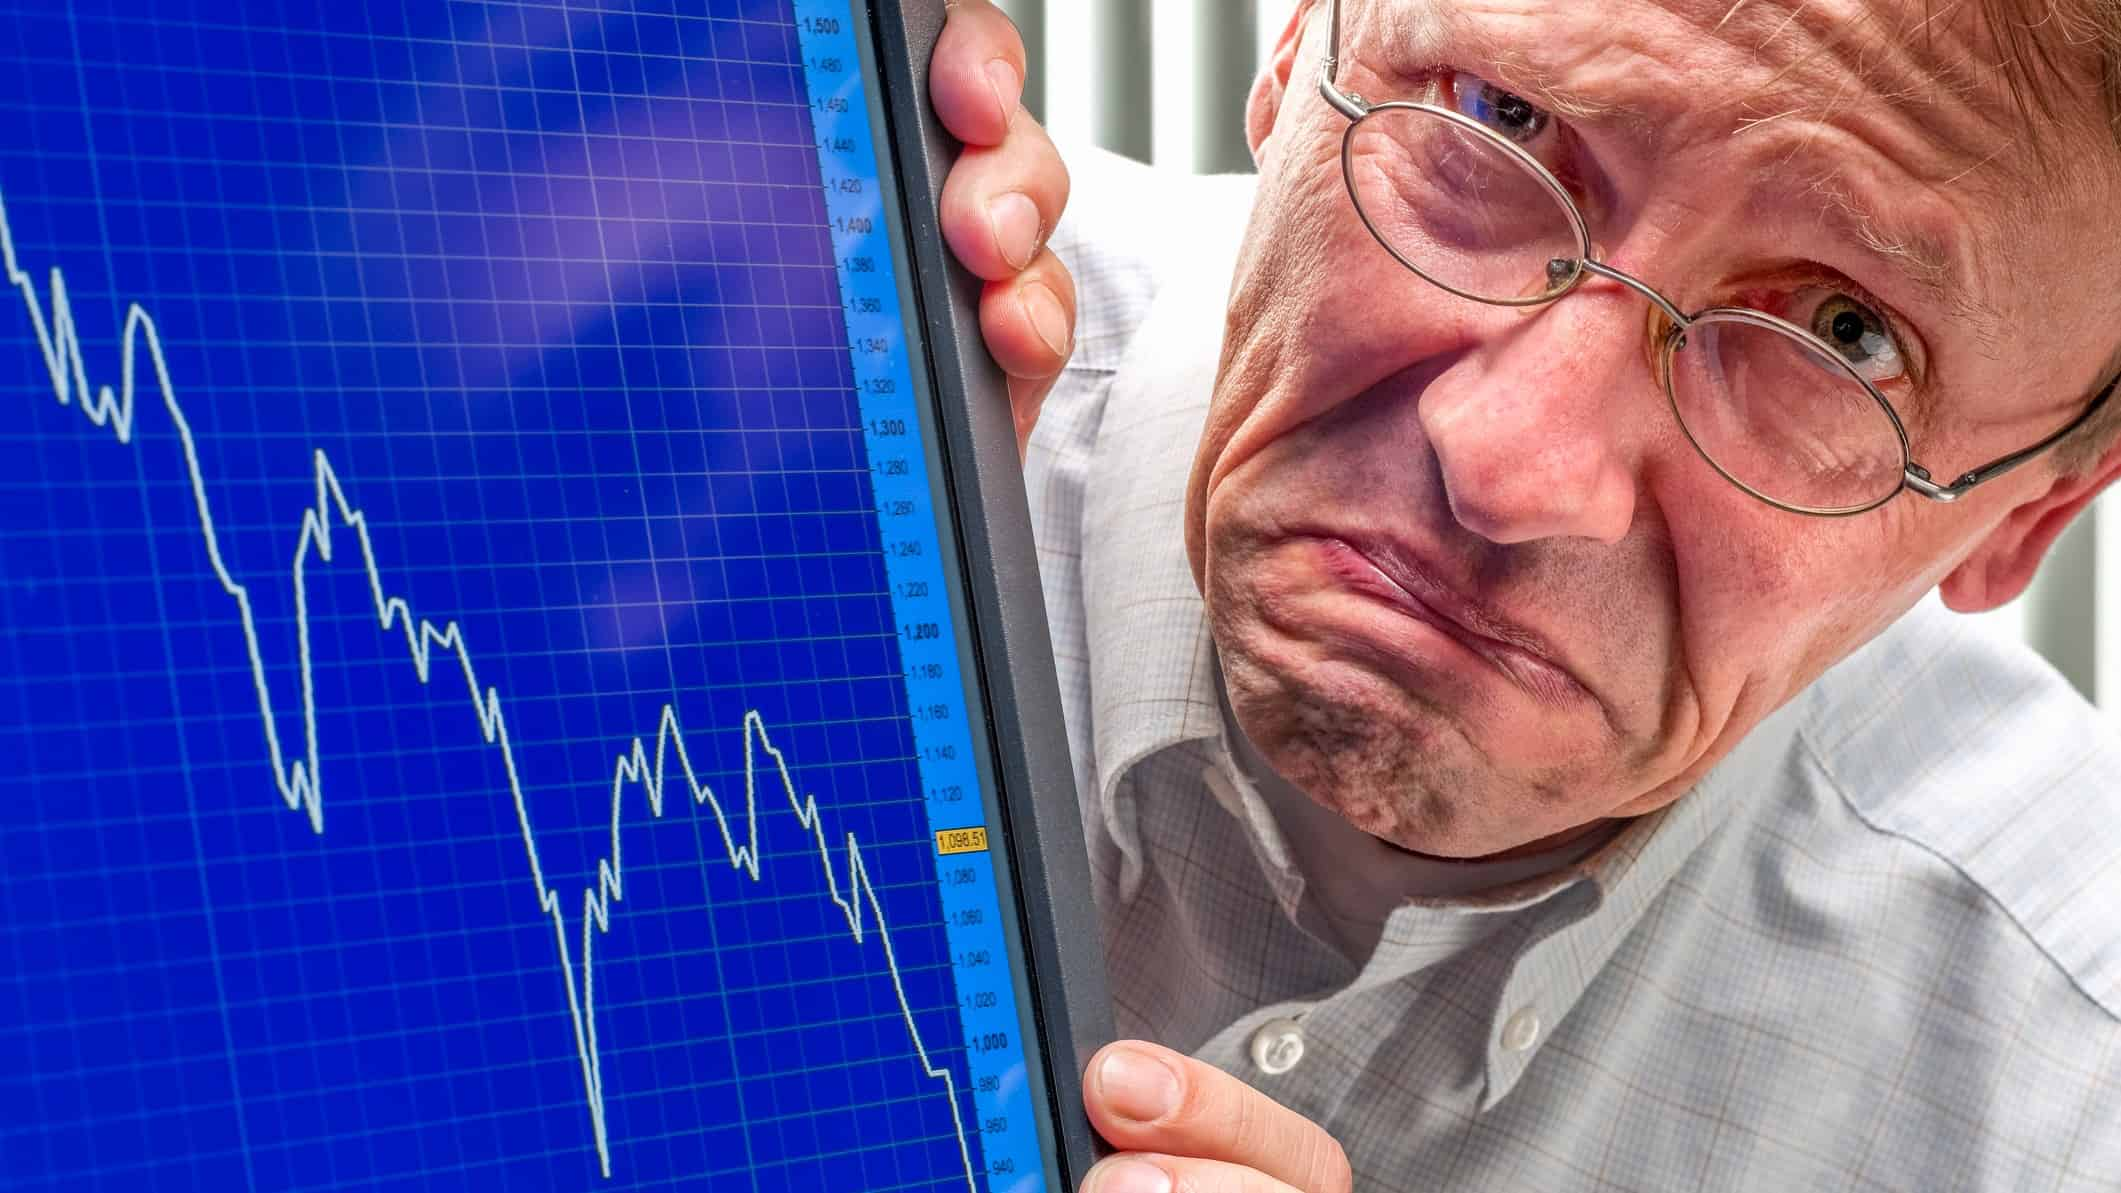 man grimaces next to falling stock graph